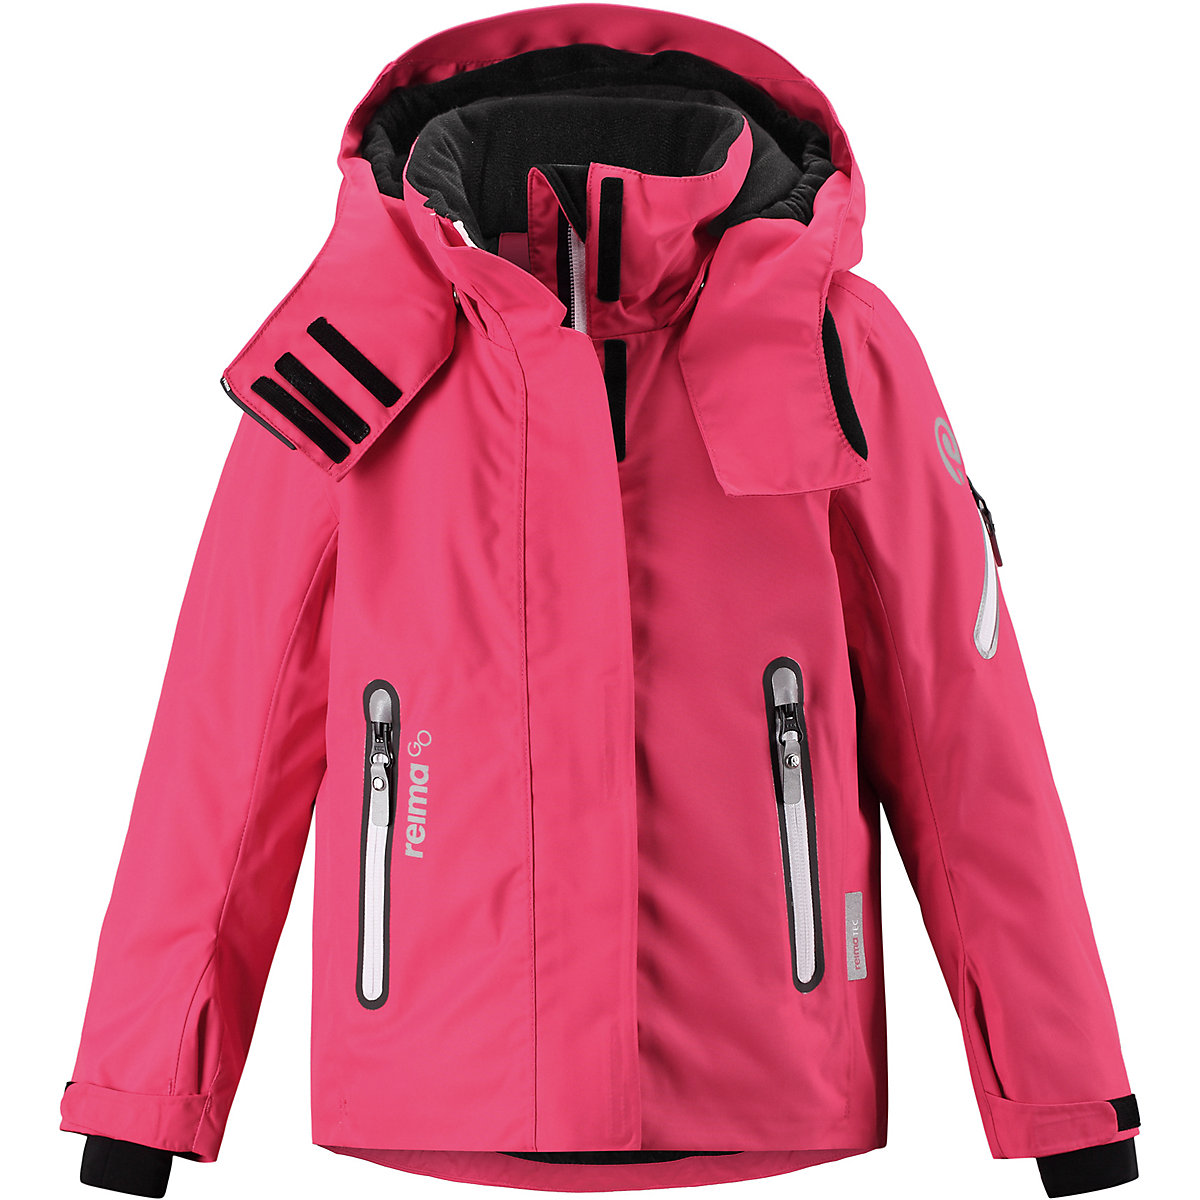 REIMA Jackets 8688754 For girls Polyester  winter fur baby clothing girl Jacket winter jacket men casual male coat warm men zipper outwear duck down jacket middle long mens parka with fur hood thick jackets